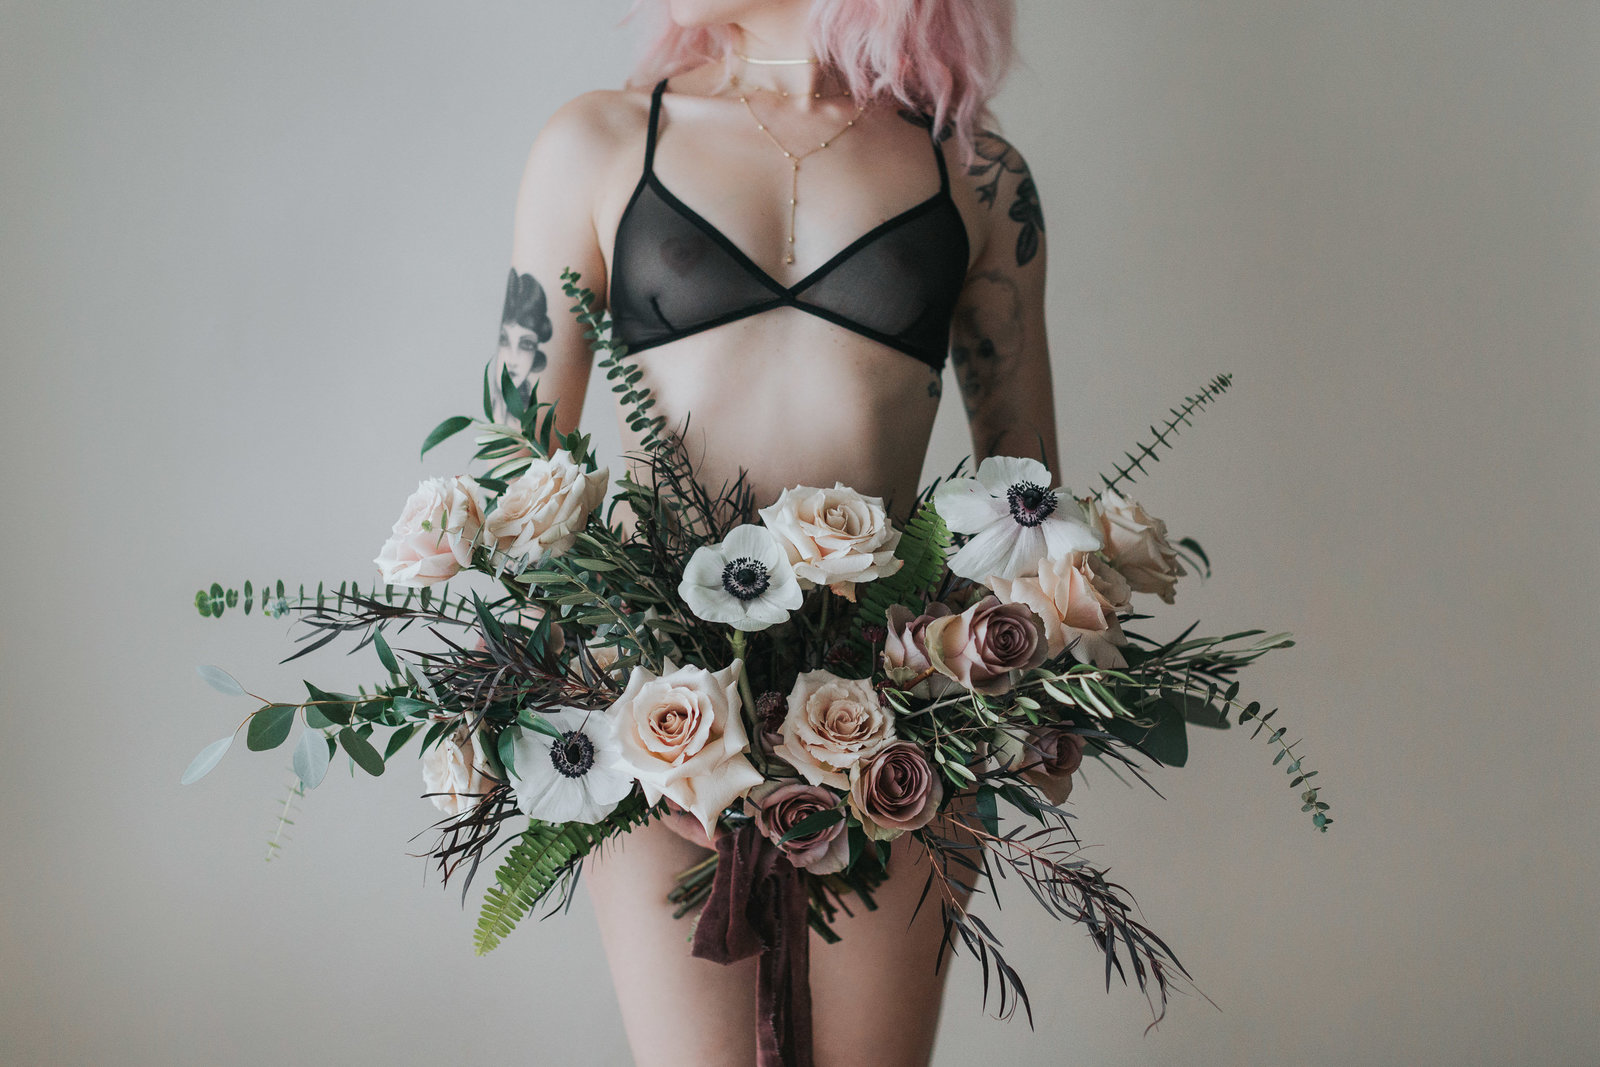 boudoir photo shoot with florals by Green Leaf Floral Design